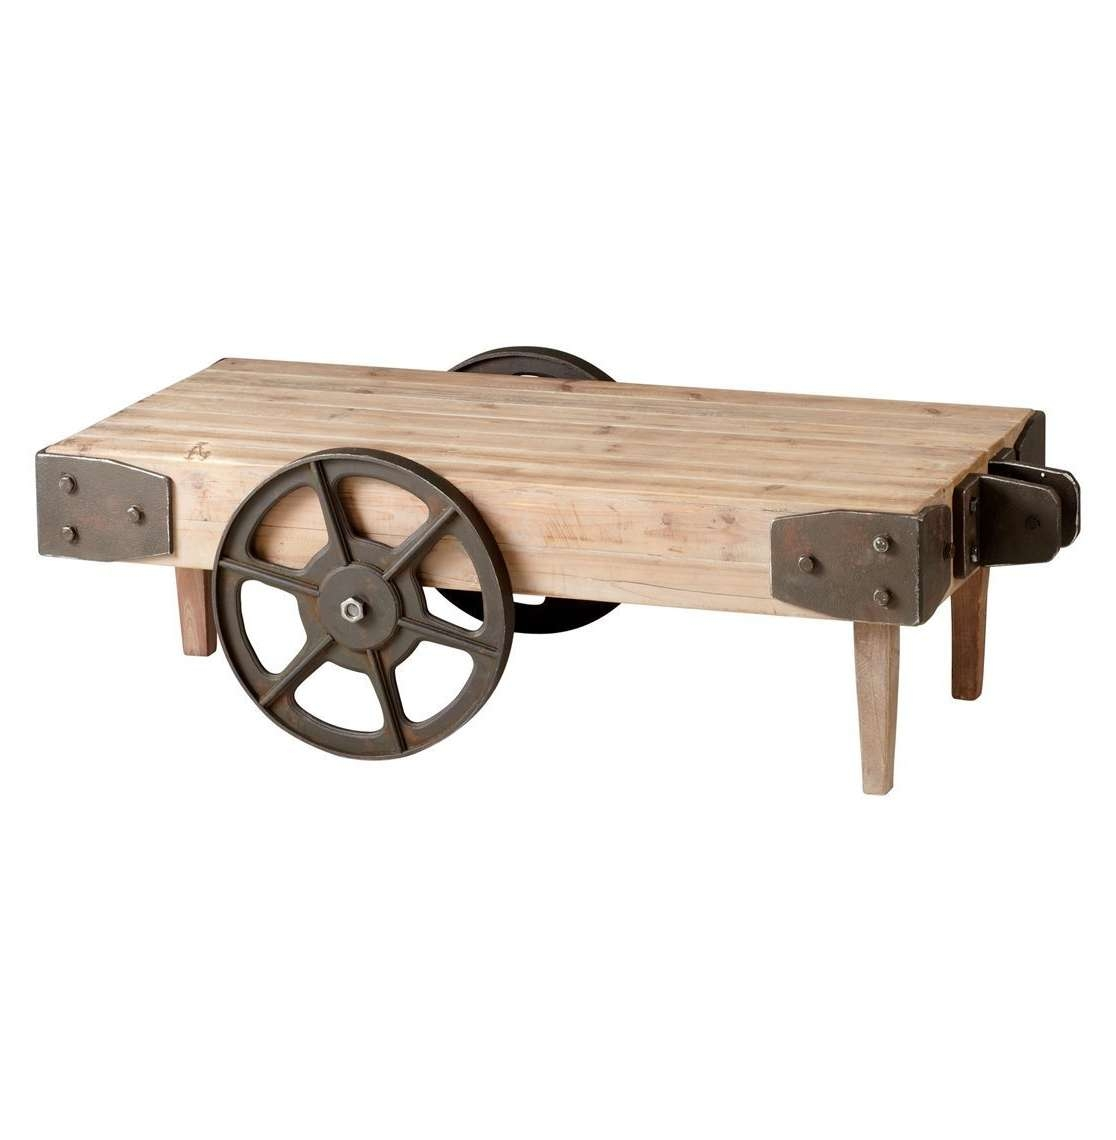 Most Current Coffee Tables With Wheels Inside Rustic Coffee Table With Wheels – Writehookstudio (View 13 of 20)